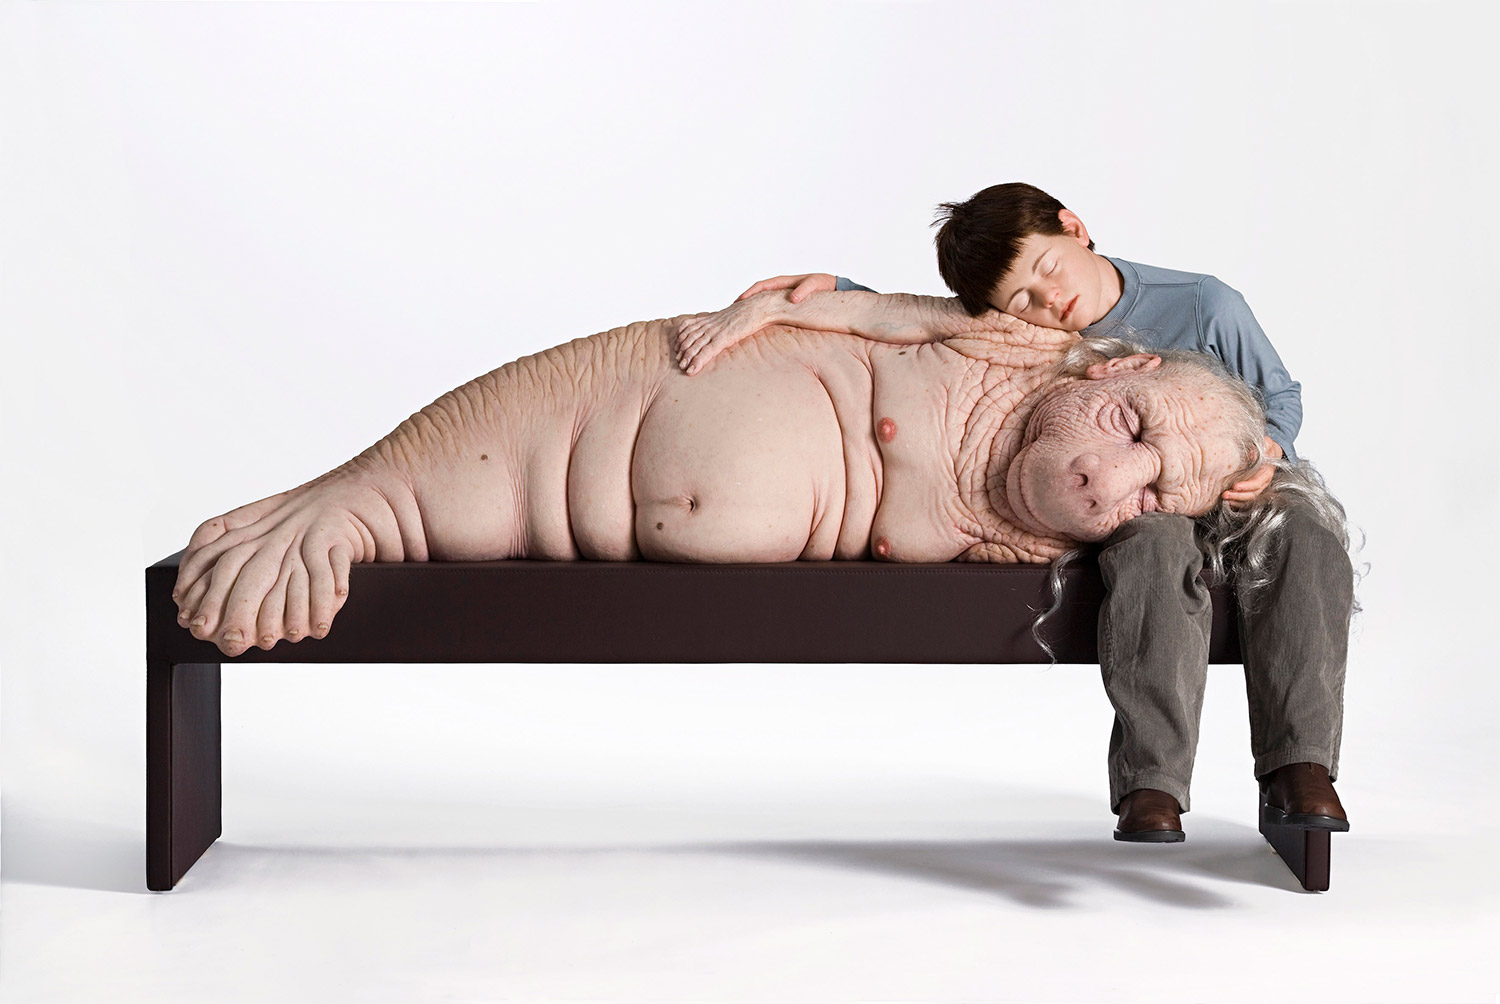 Patricia Piccinini, The Long Awaited - hybrid animal and young boy cuddling